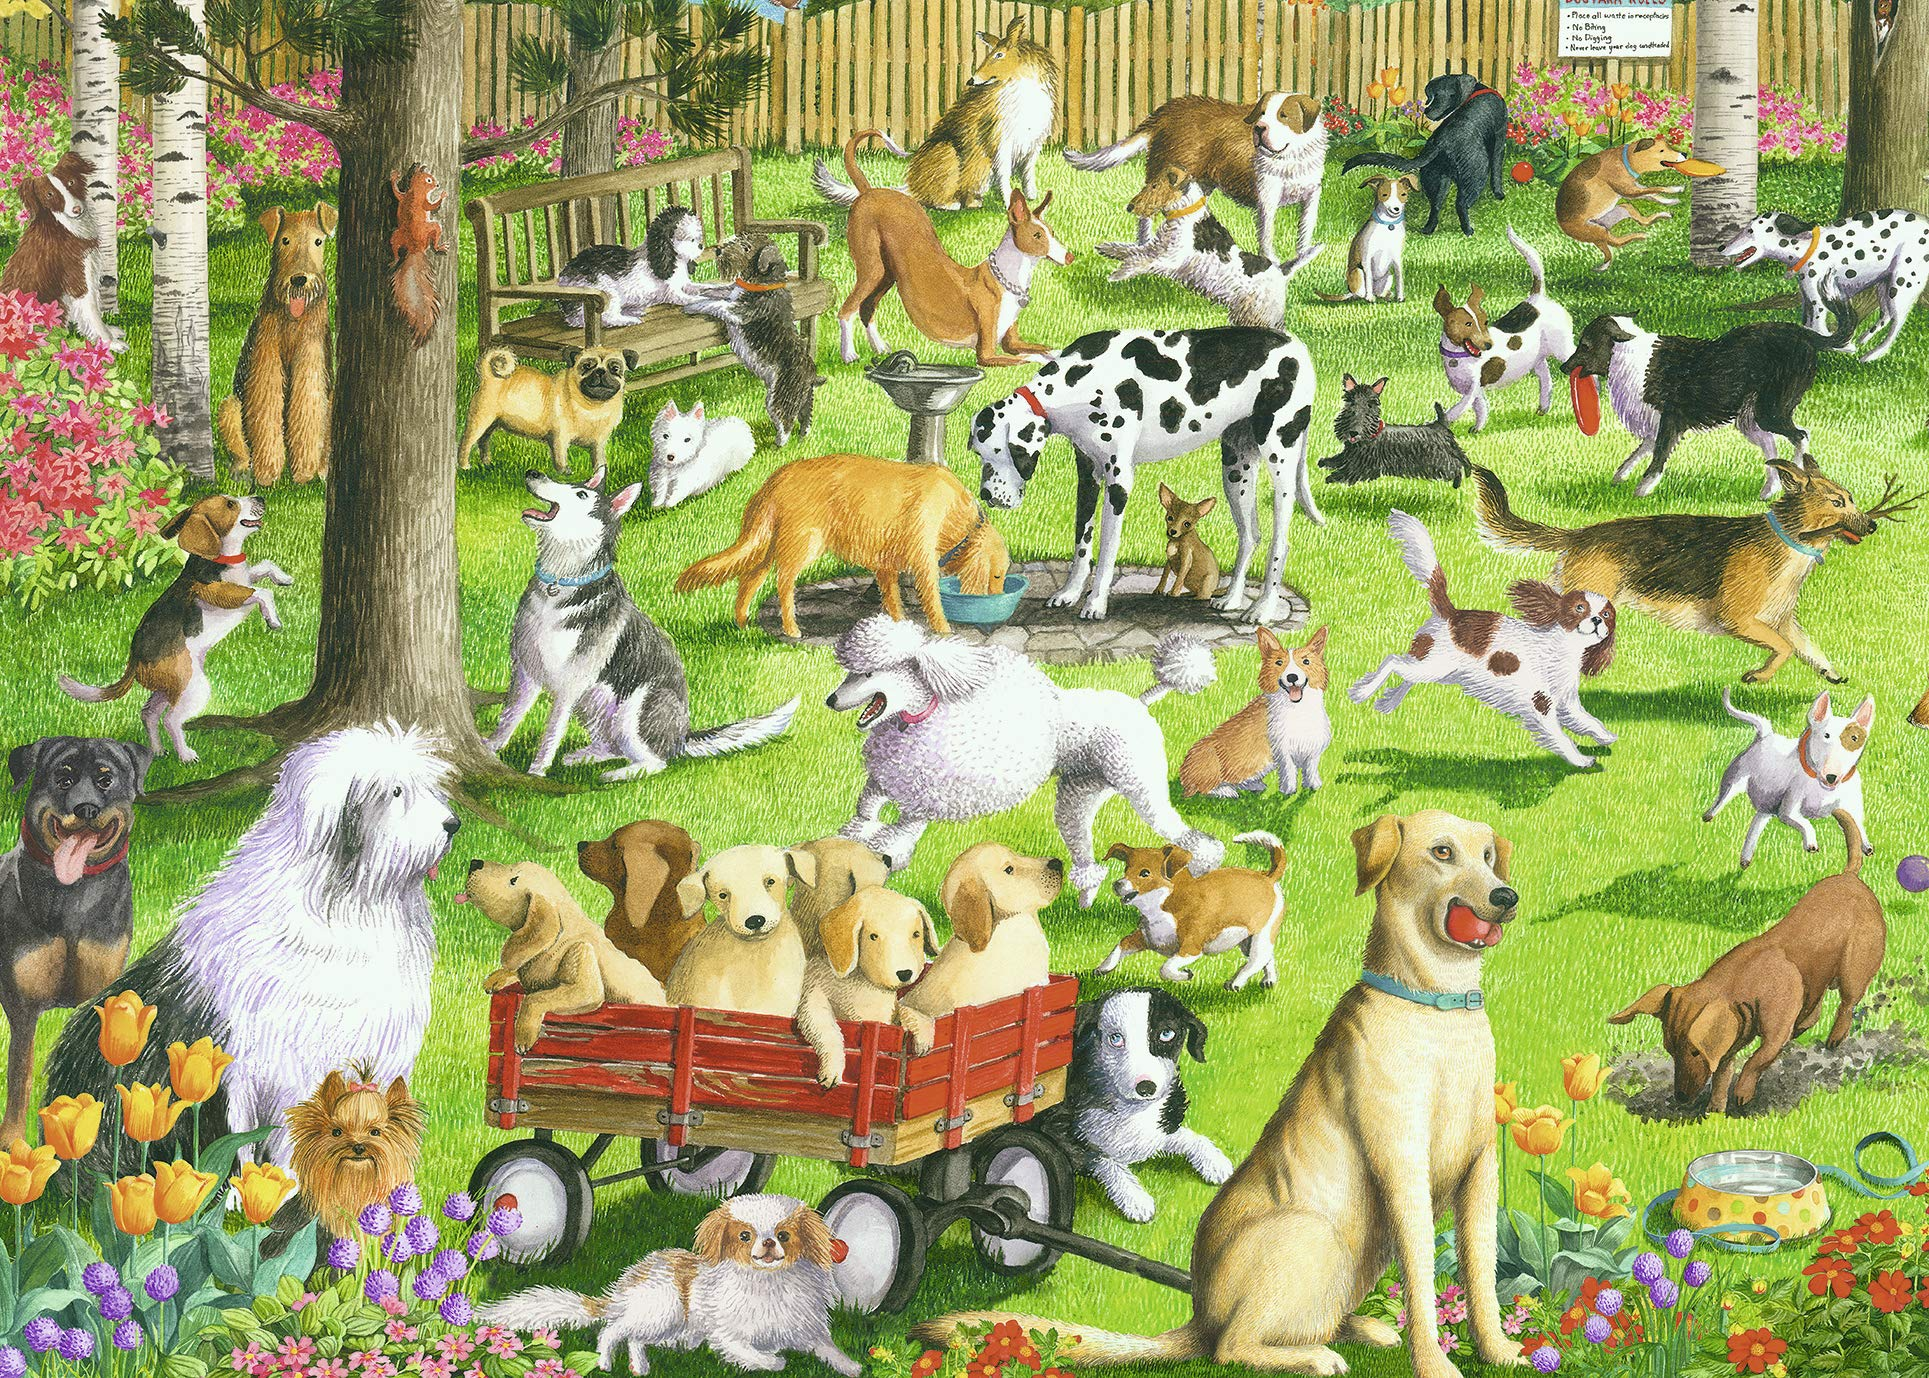 Ravensburger at The Dog Park Large Format 500 Piece Jigsaw Puzzle for Adults – Every Piece is Unique, Softclick Technology Means Pieces Fit Together Perfectly